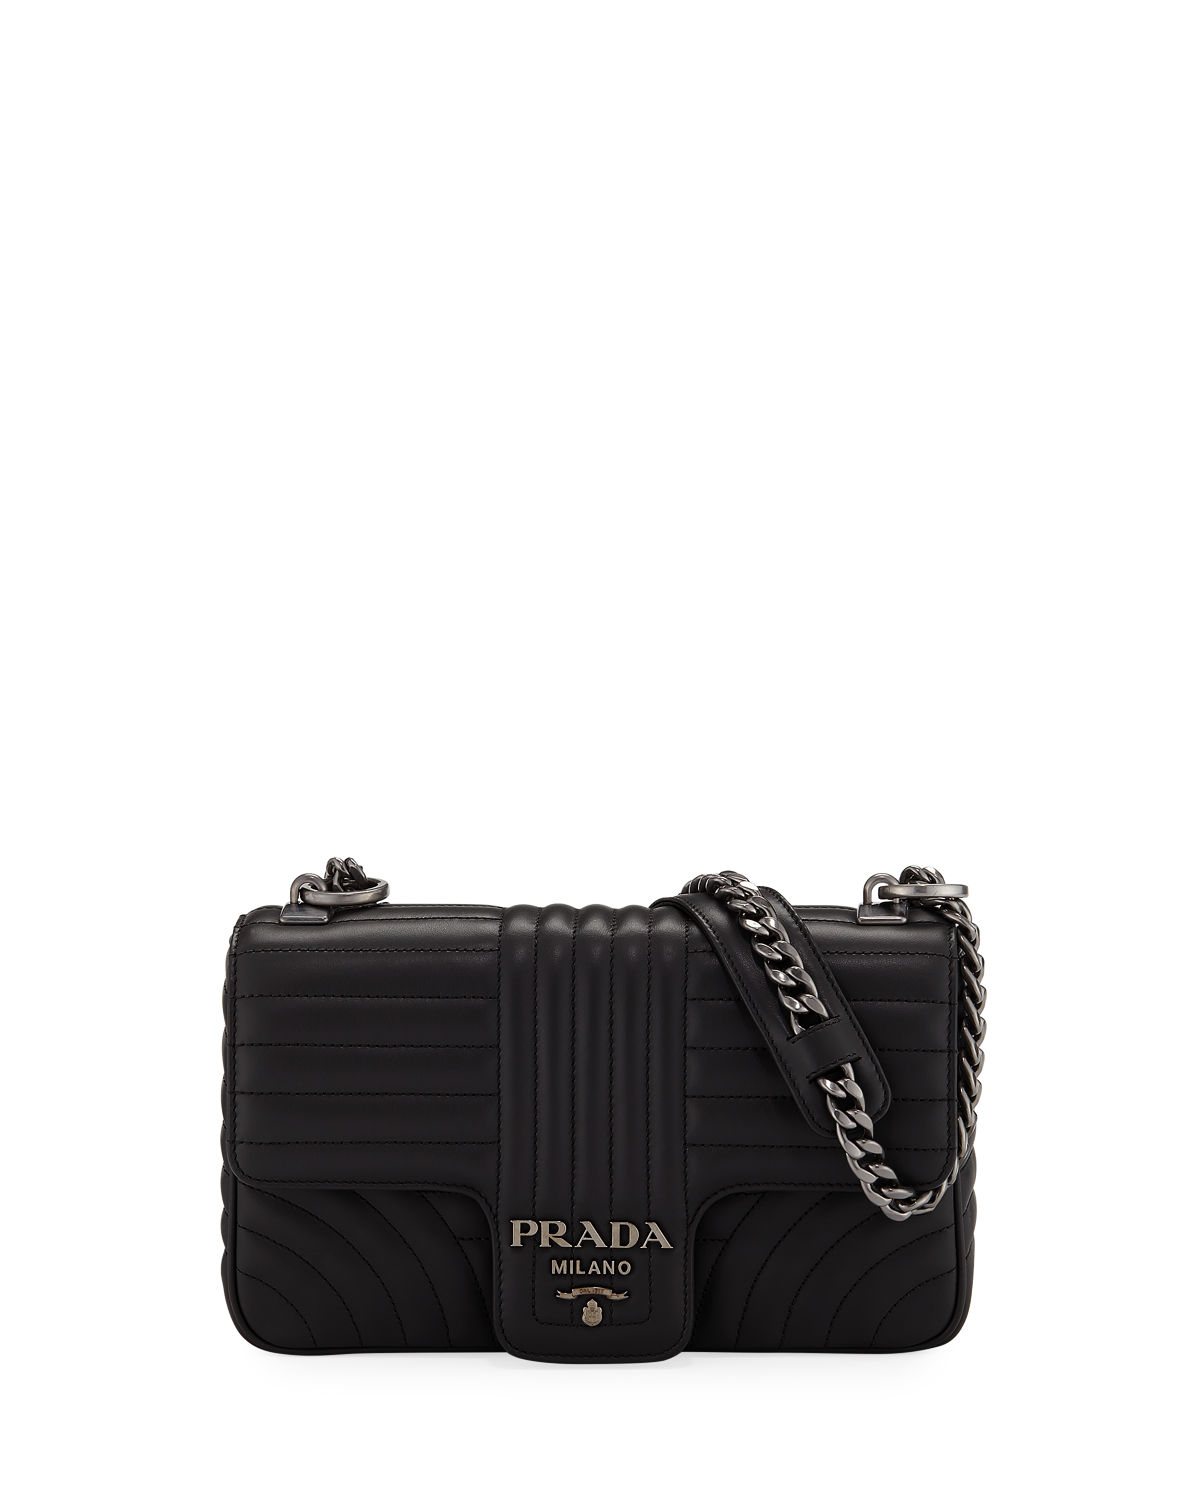 3975be828b37 Prada Diagramme Medium Shoulder Bag